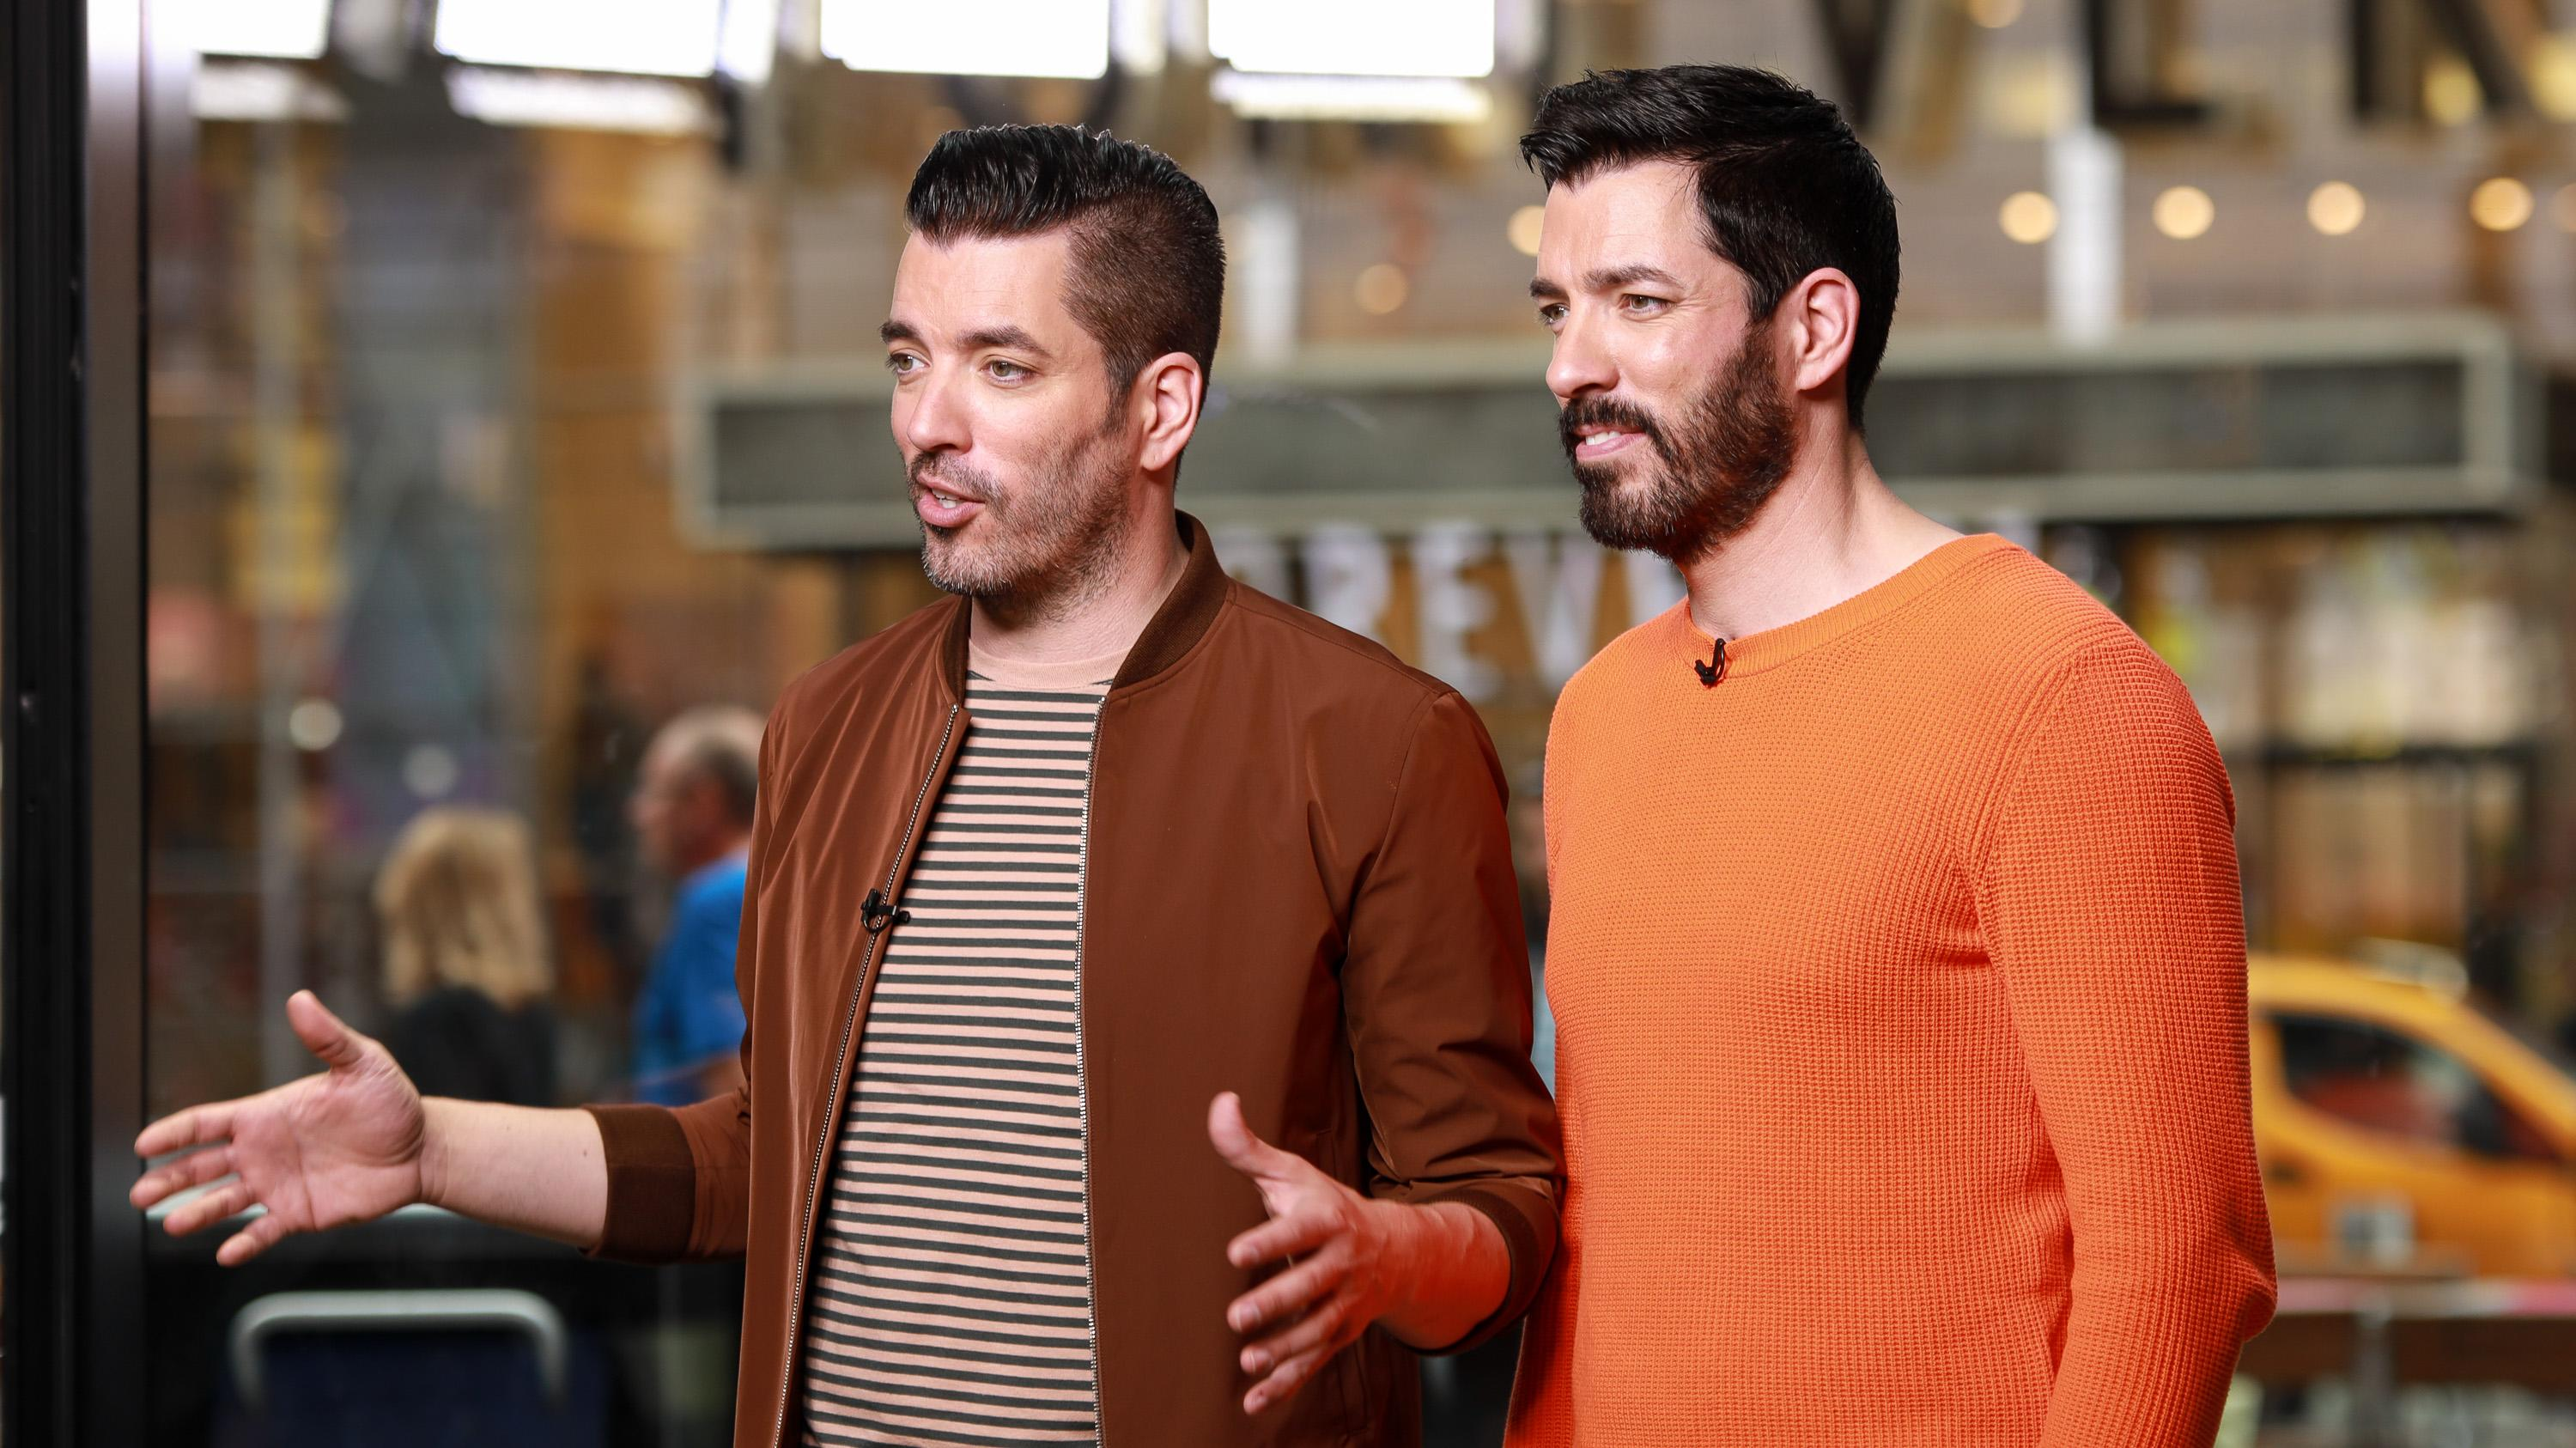 Property Brothers: More people will renovate homes when the market softens